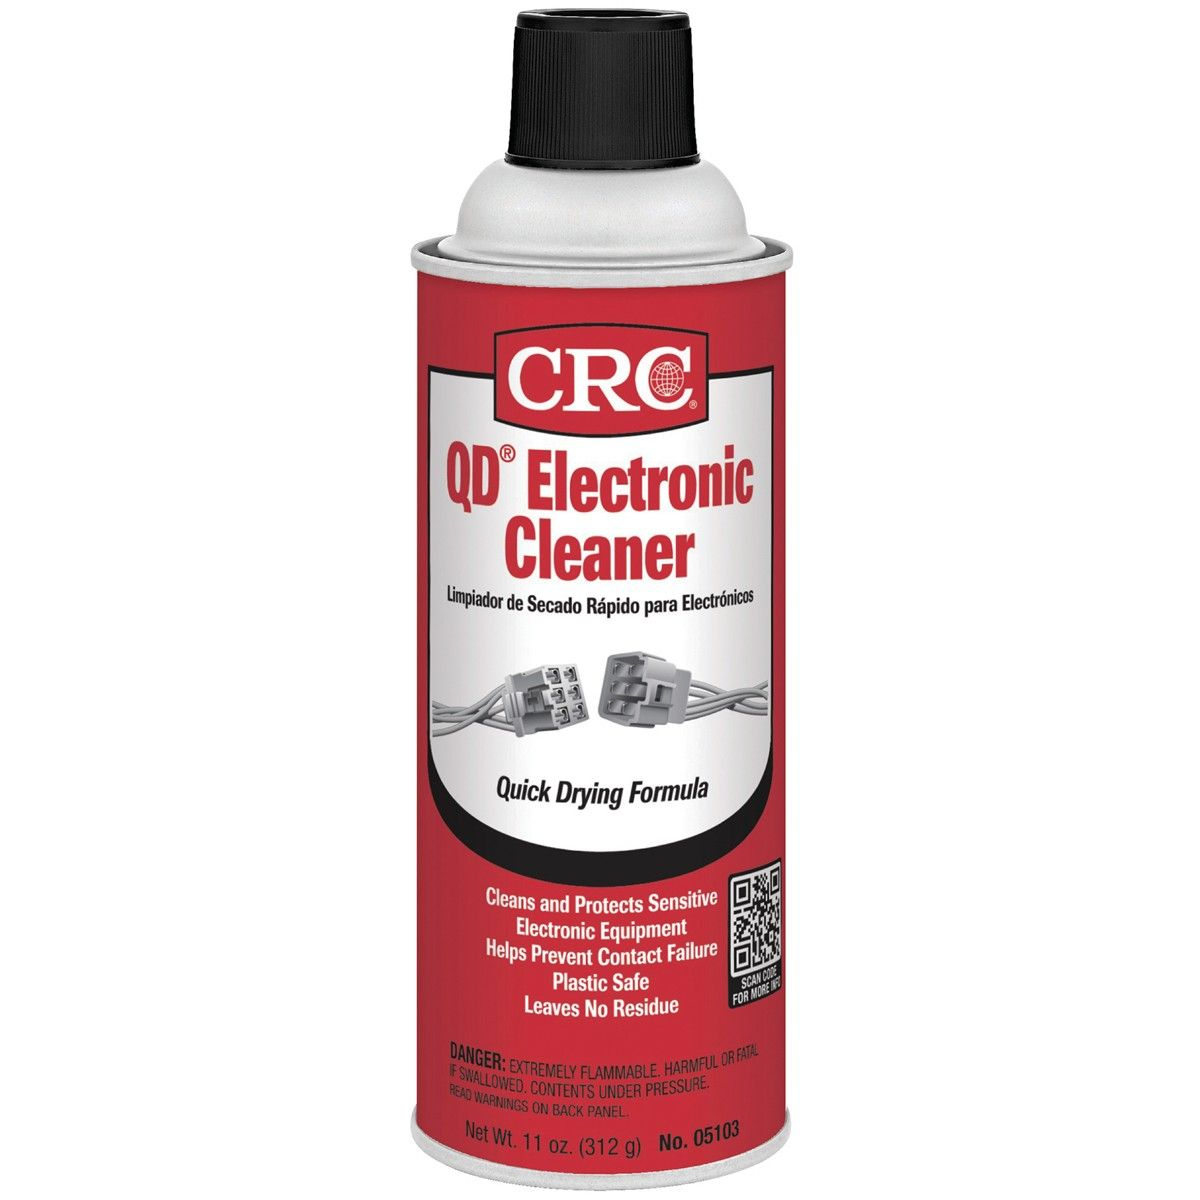 11 Oz Crc Electronic Cleaner With Images Cleaners Quick Dry